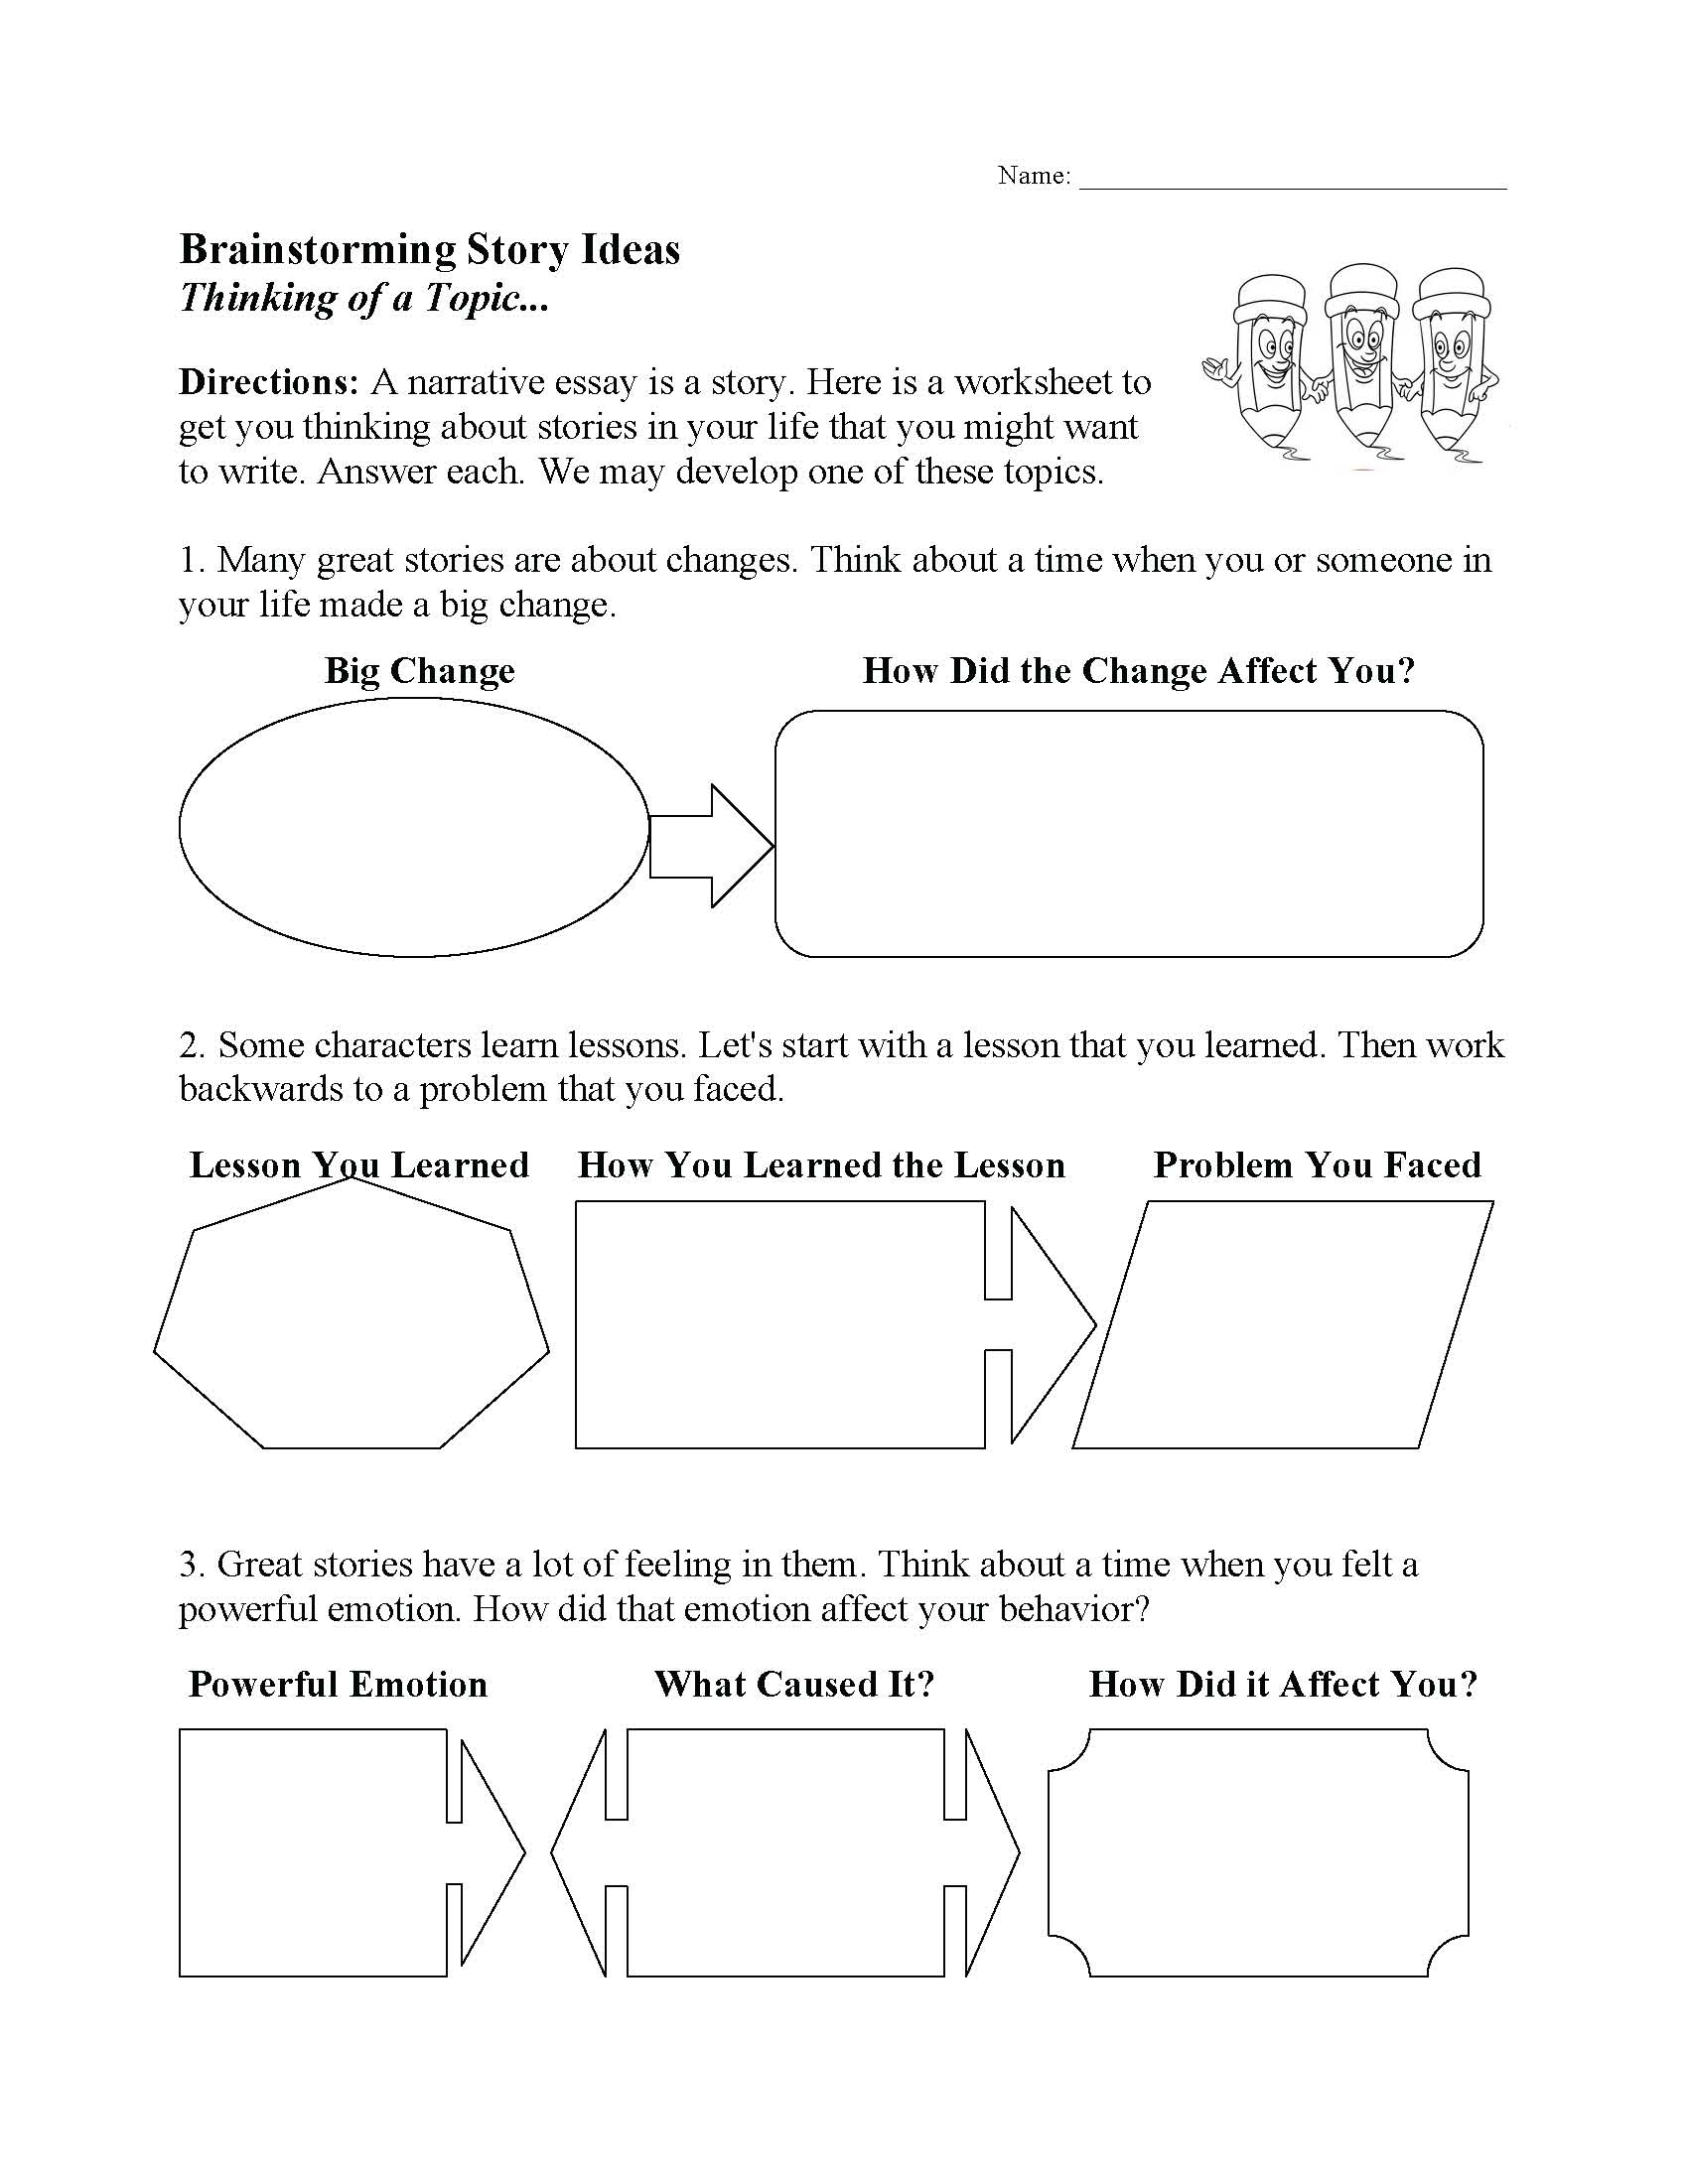 This is a preview image of one of our Writing Worksheets. Click on it to view all of our writing worksheets.